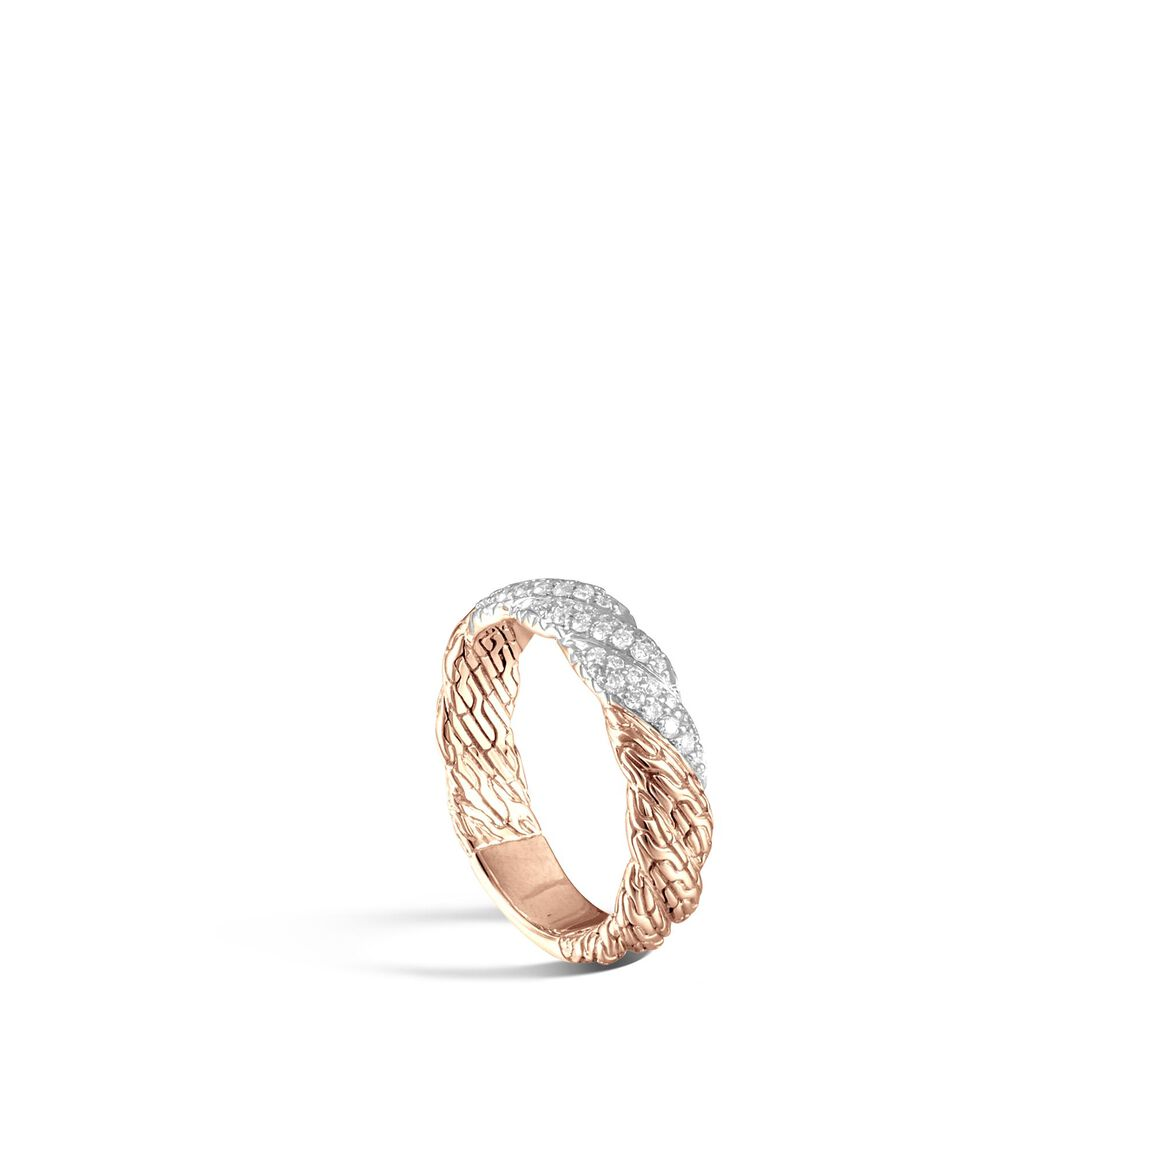 Twisted Chain 5MM Band Ring in 18K Gold with Diamonds